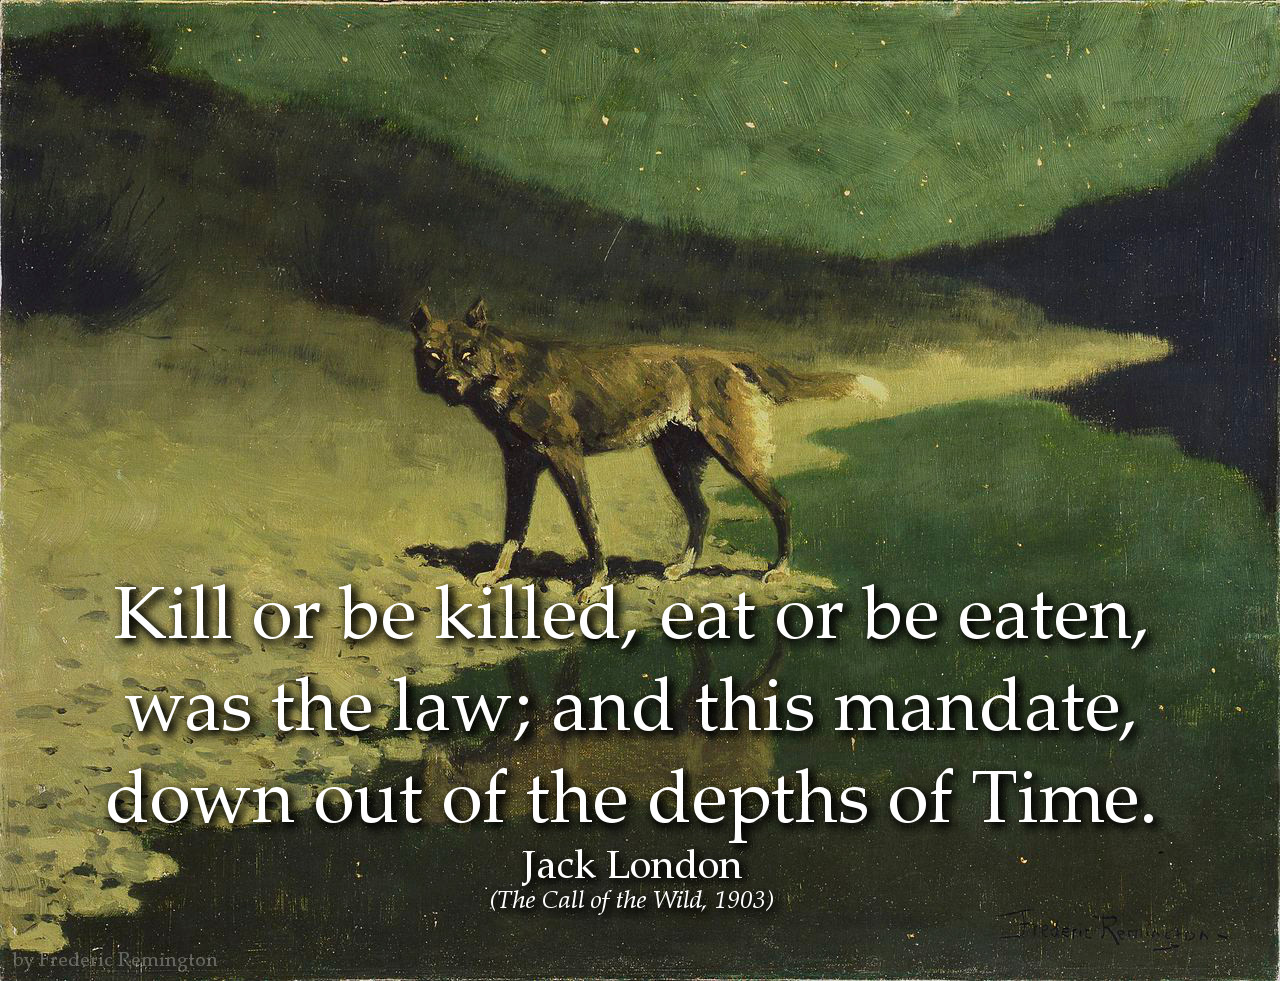 Jack London Quote: Kill or be killed, eat or be eaten, was the law; and this mandate...